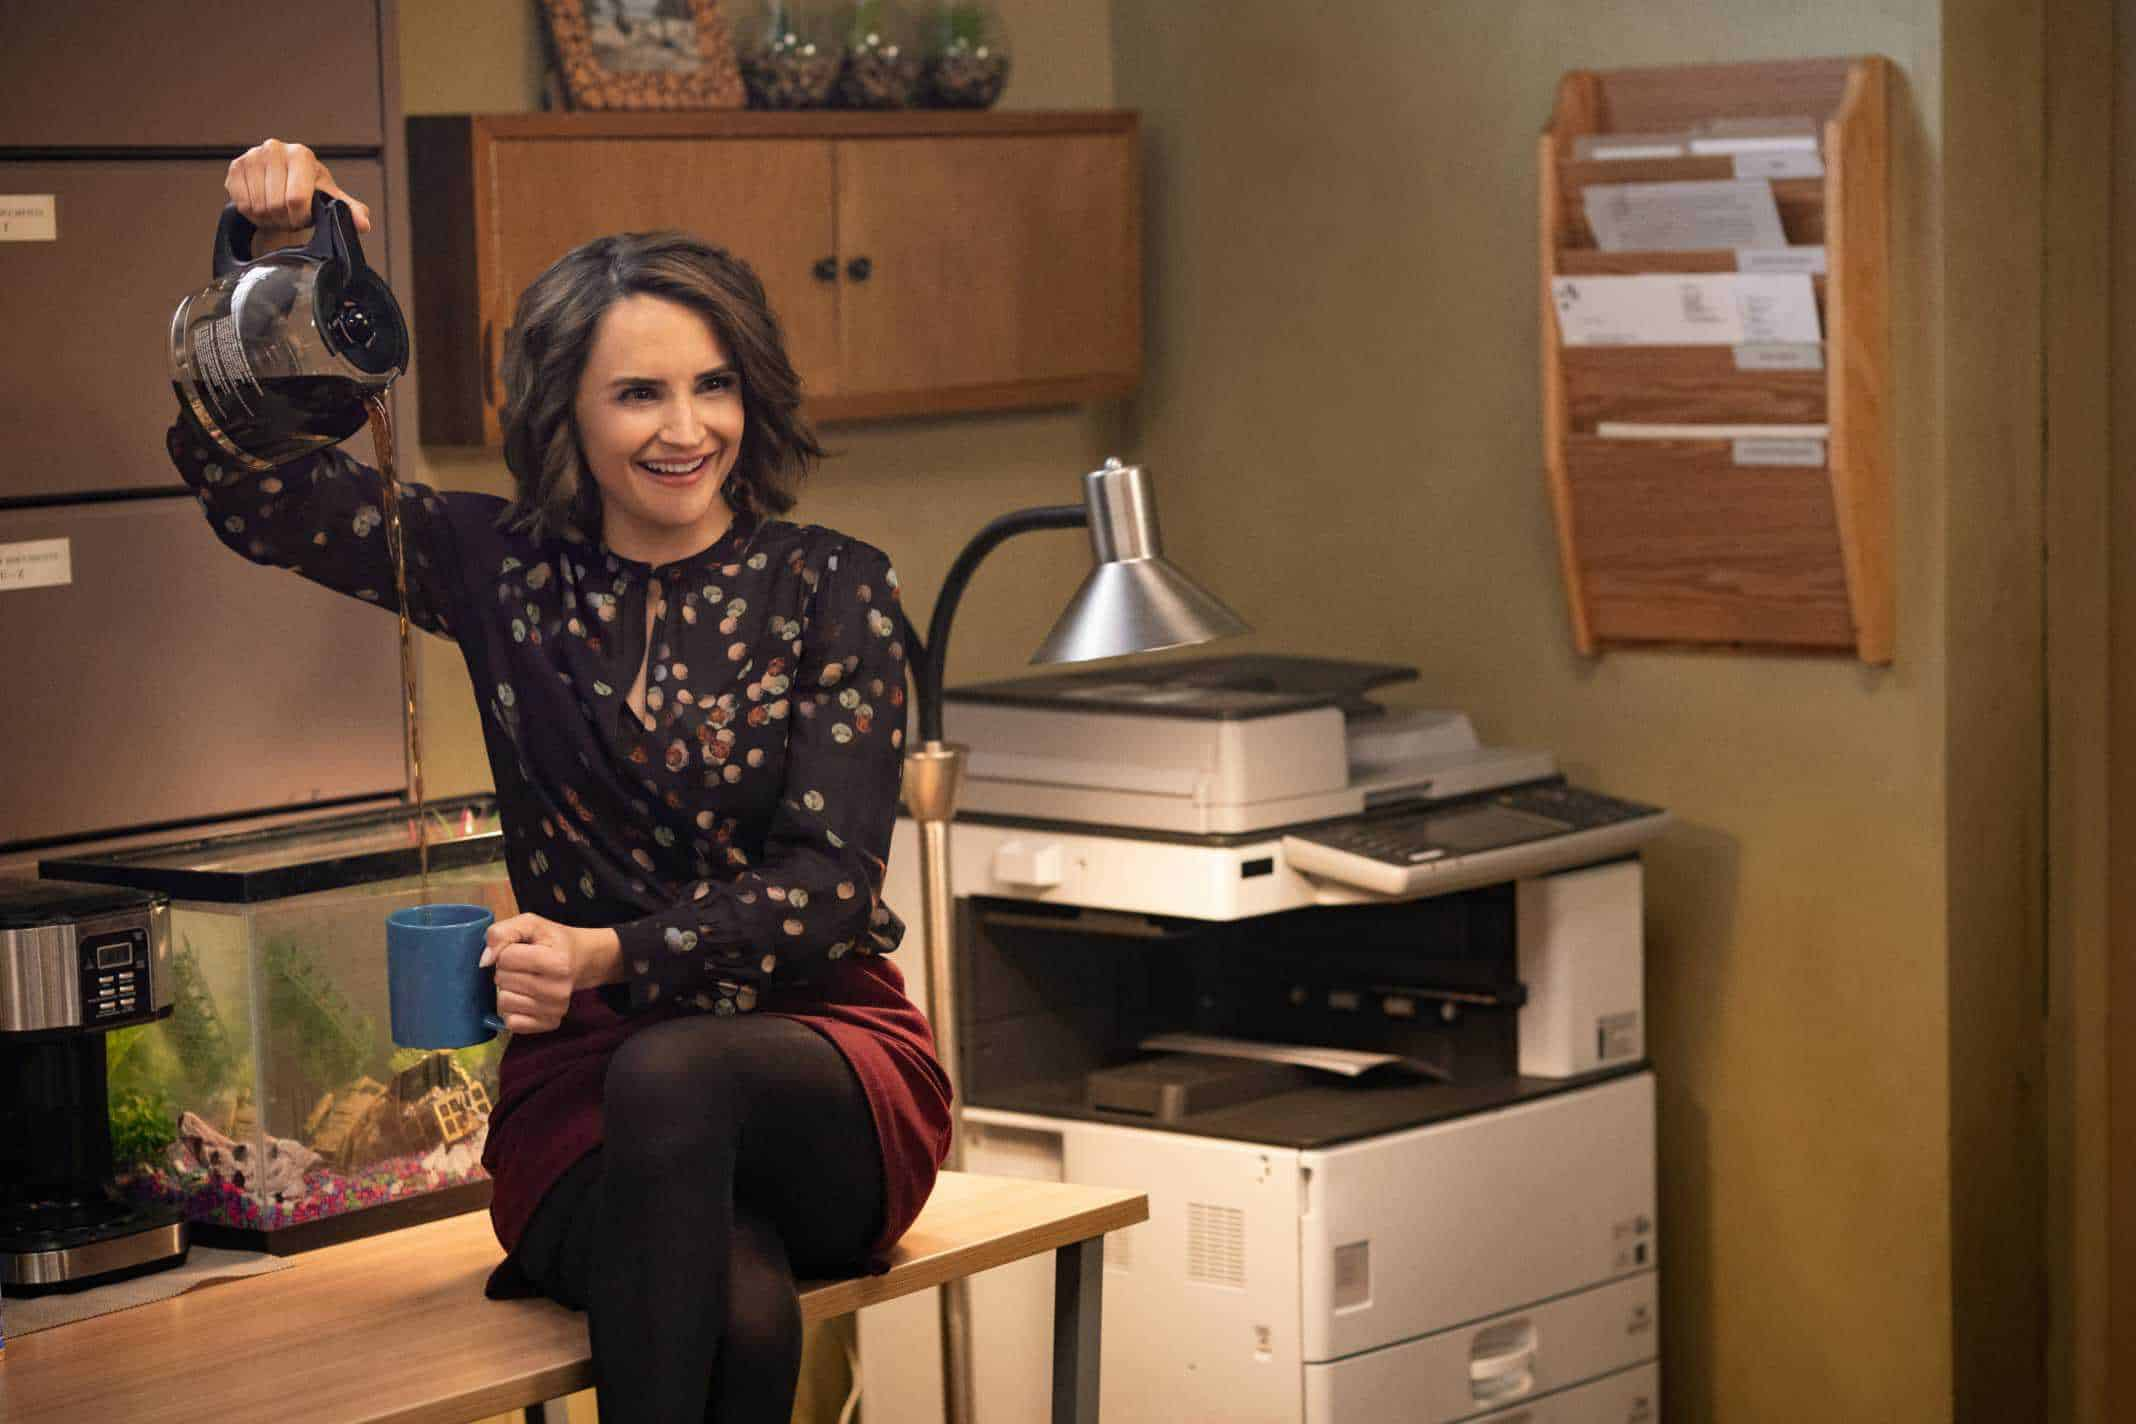 Susan (Rachel Leigh Cook) on a table, pouring coffee.